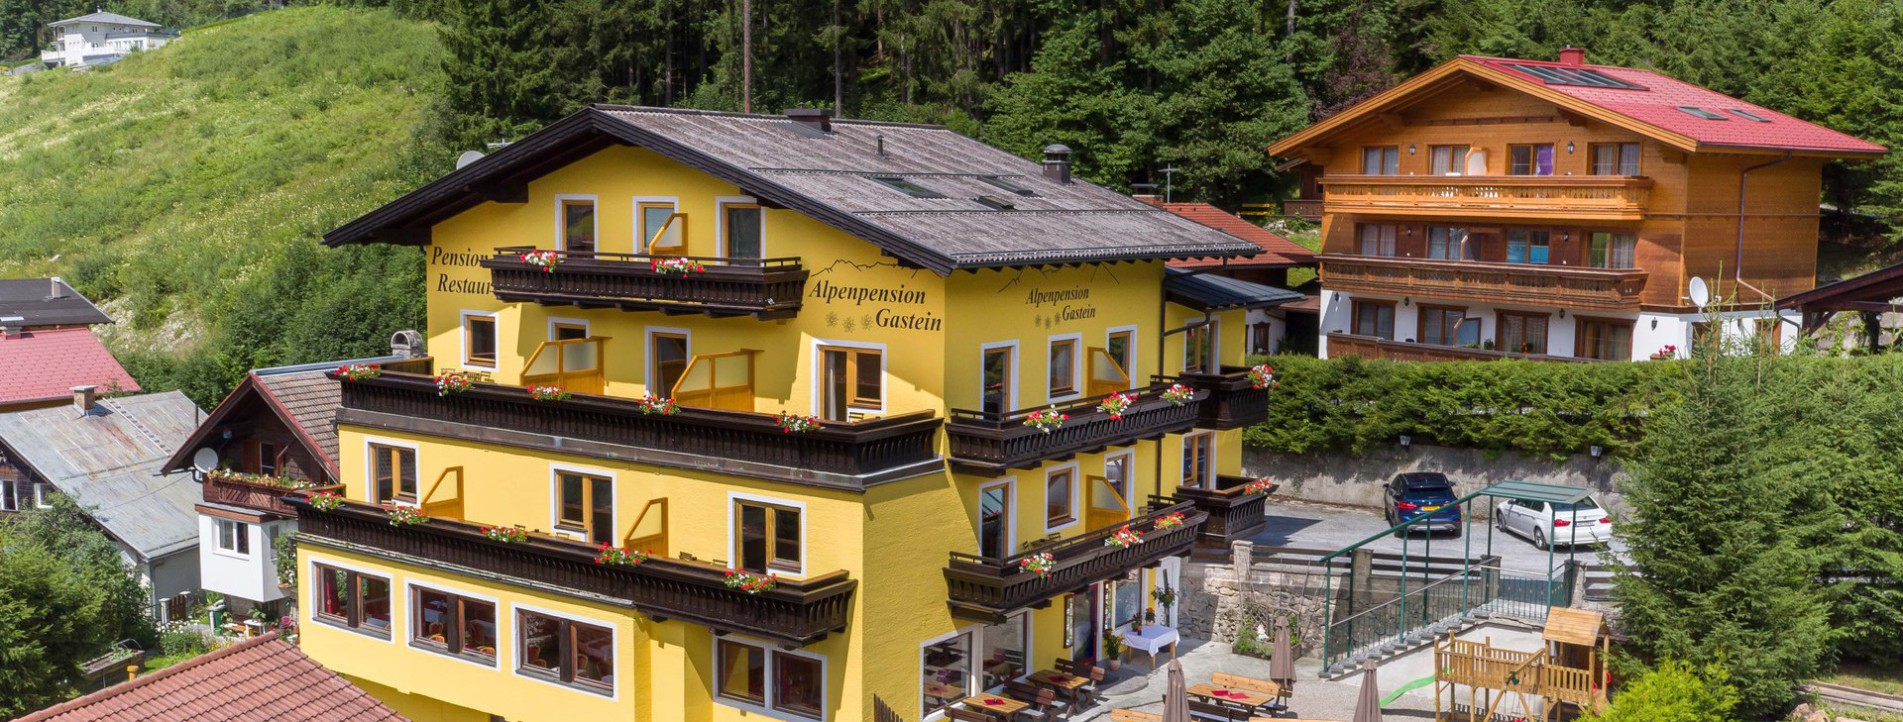 Alpenpension Gastein, Bad Gastein, Pension und Restaurant